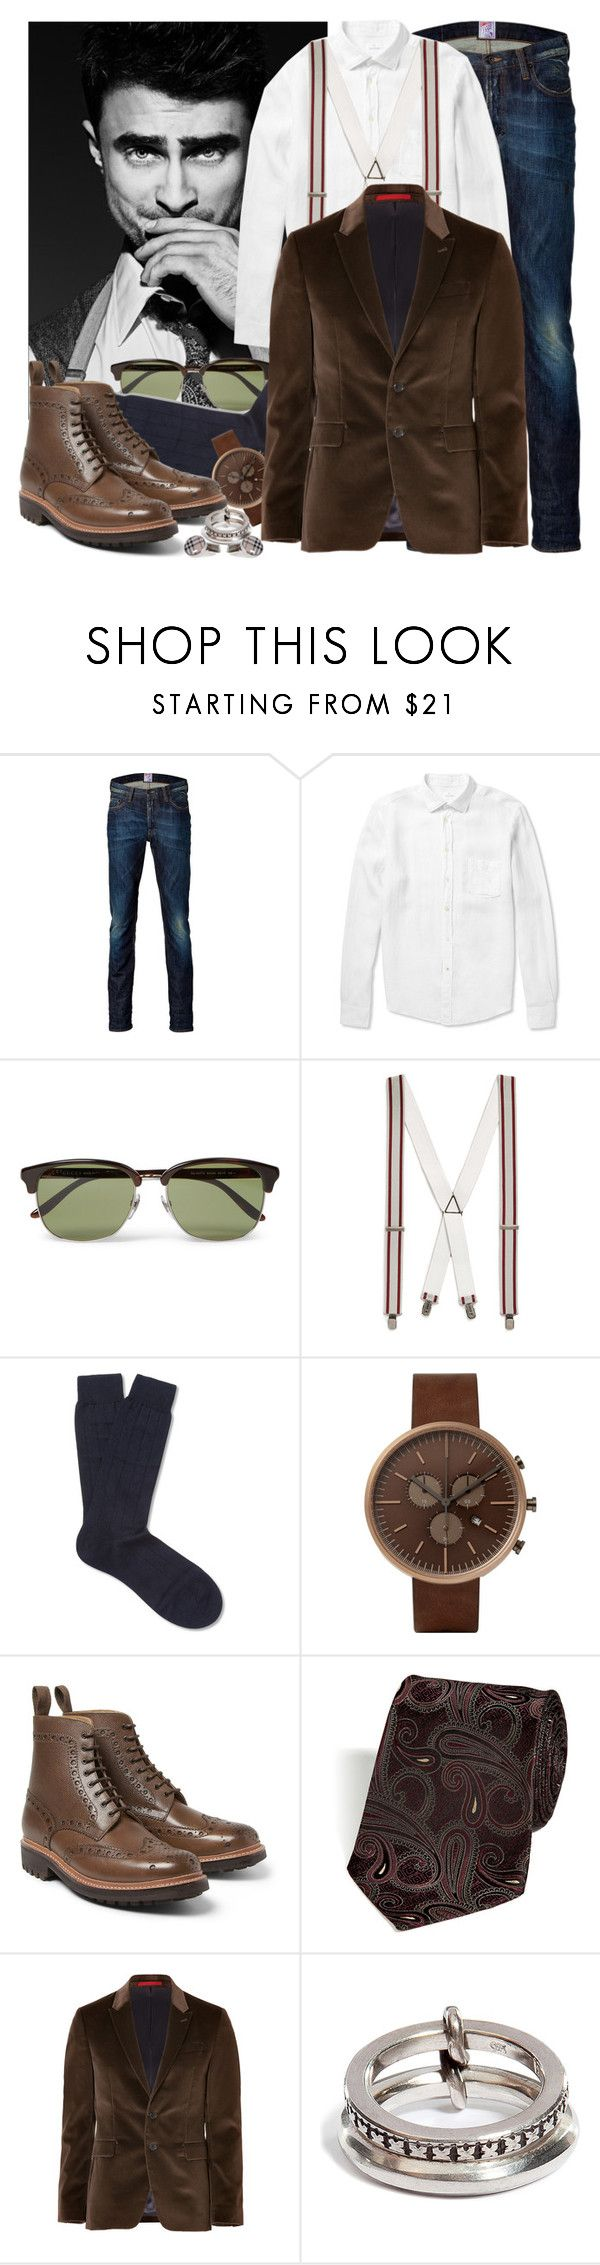 """""""DanRad inspired look_10.23"""" by rosalol ❤ liked on Polyvore featuring Radcliffe, PRPS, Hartford, Gucci, Topman, Pantherella, Uniform Wares, Grenson, Etro and PS Paul Smith"""